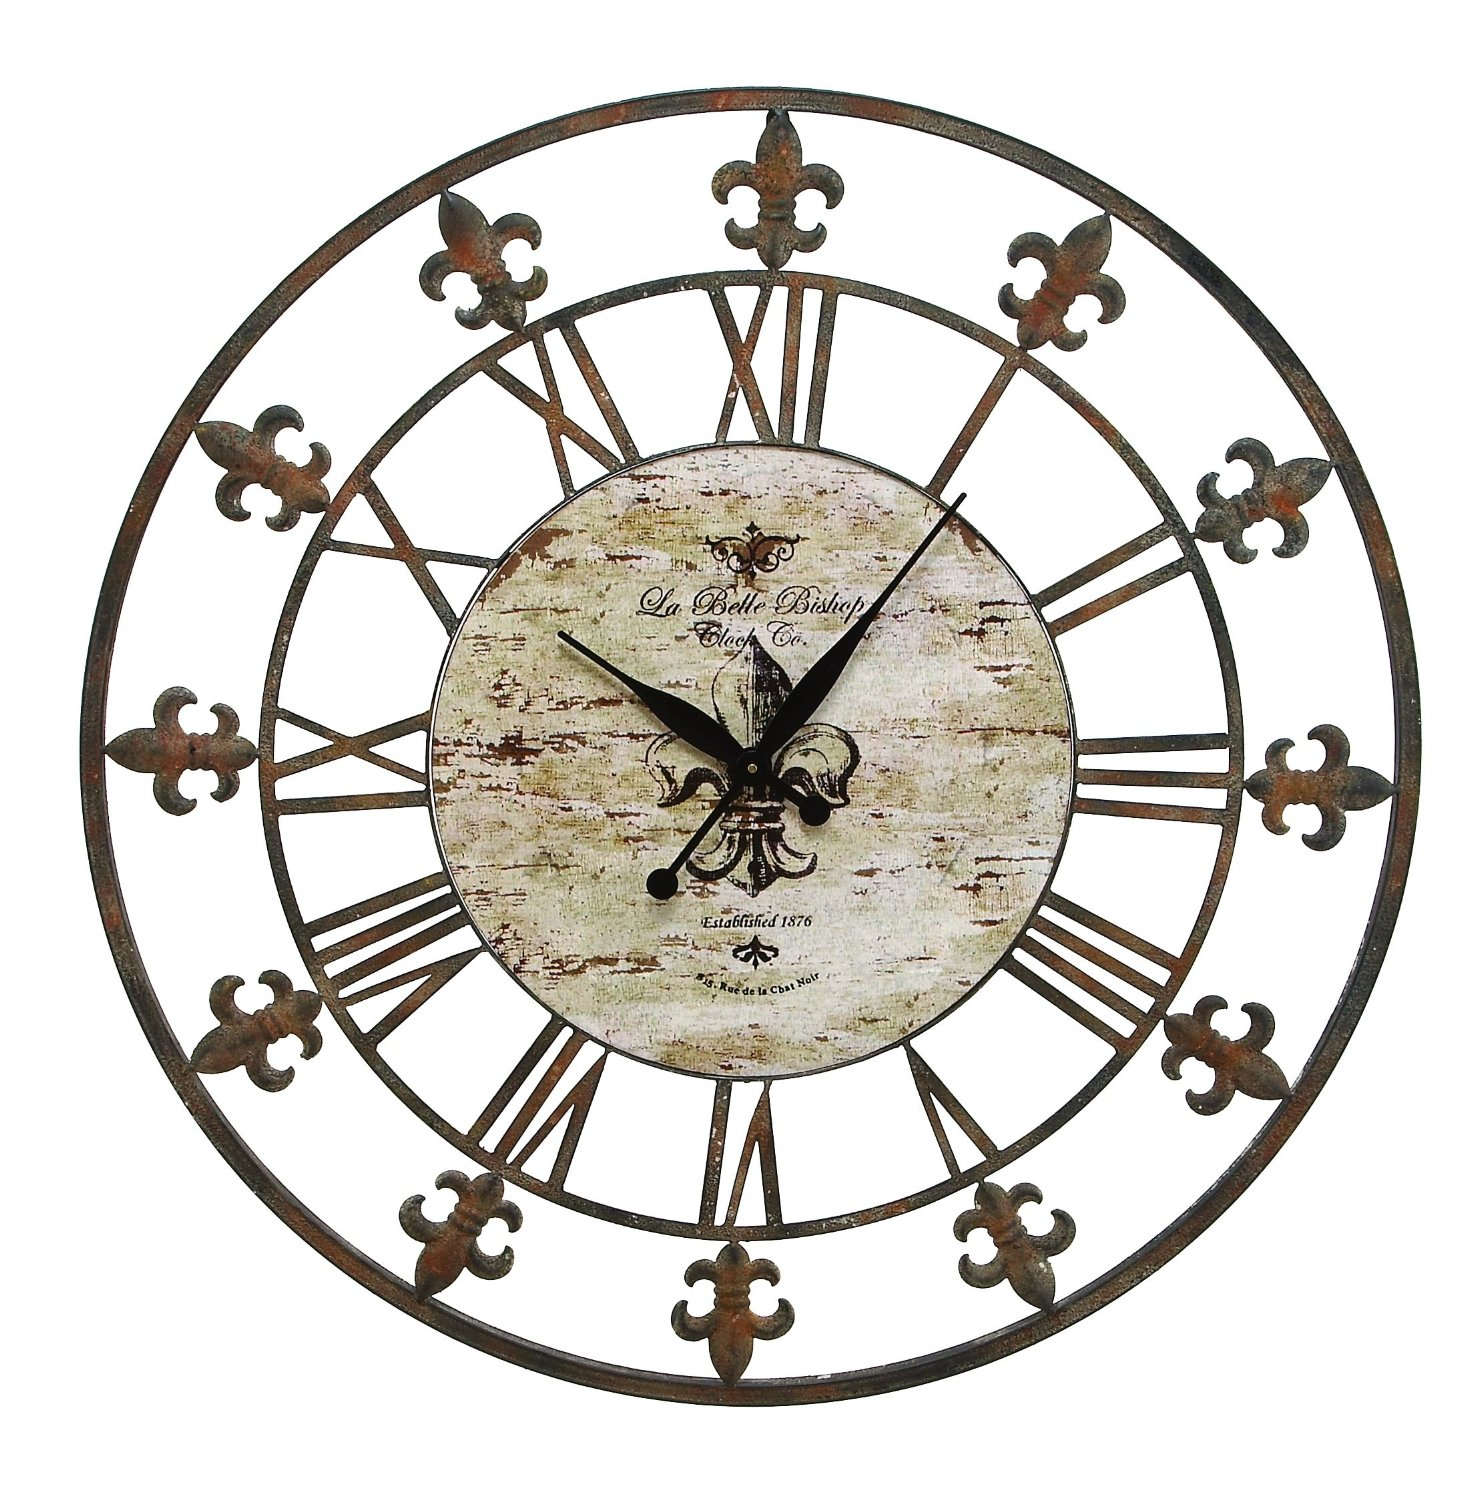 Total fab oversized giant metal wall clocks where oh where placing your decorative metal wall clock amipublicfo Image collections